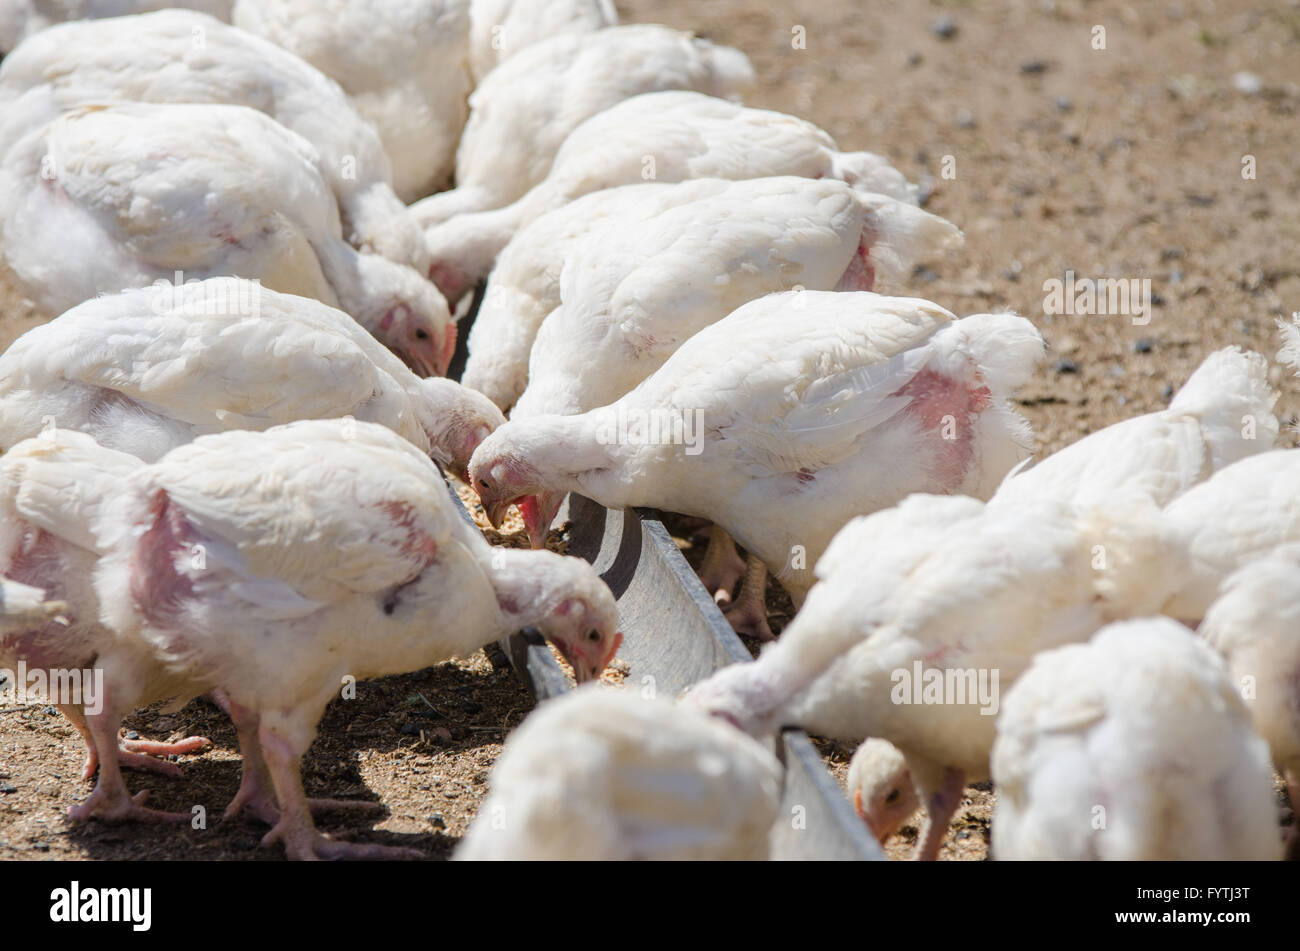 Many chicks growing up chickens and turkeys peck feed tray pen - Stock Image